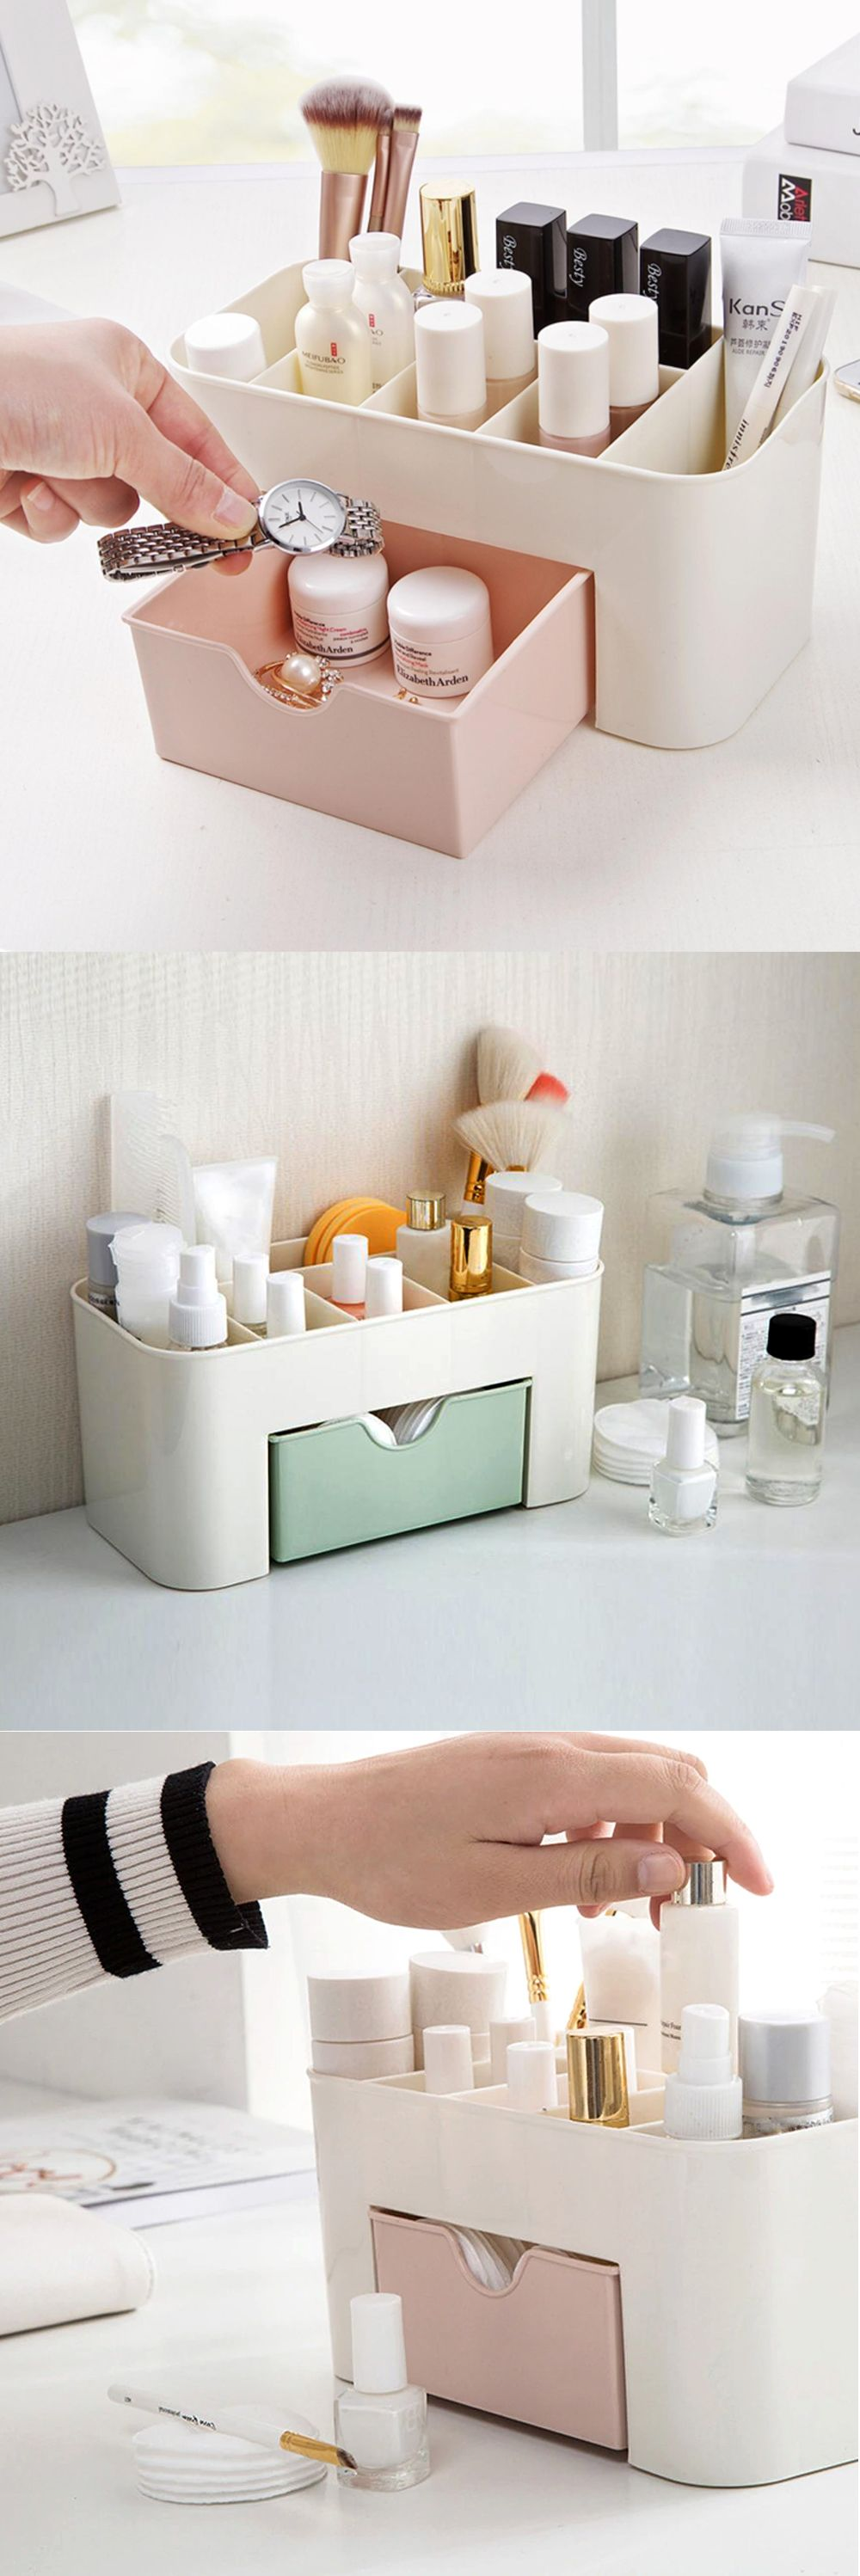 Organise your cosmetics, makeup brushes and other tools